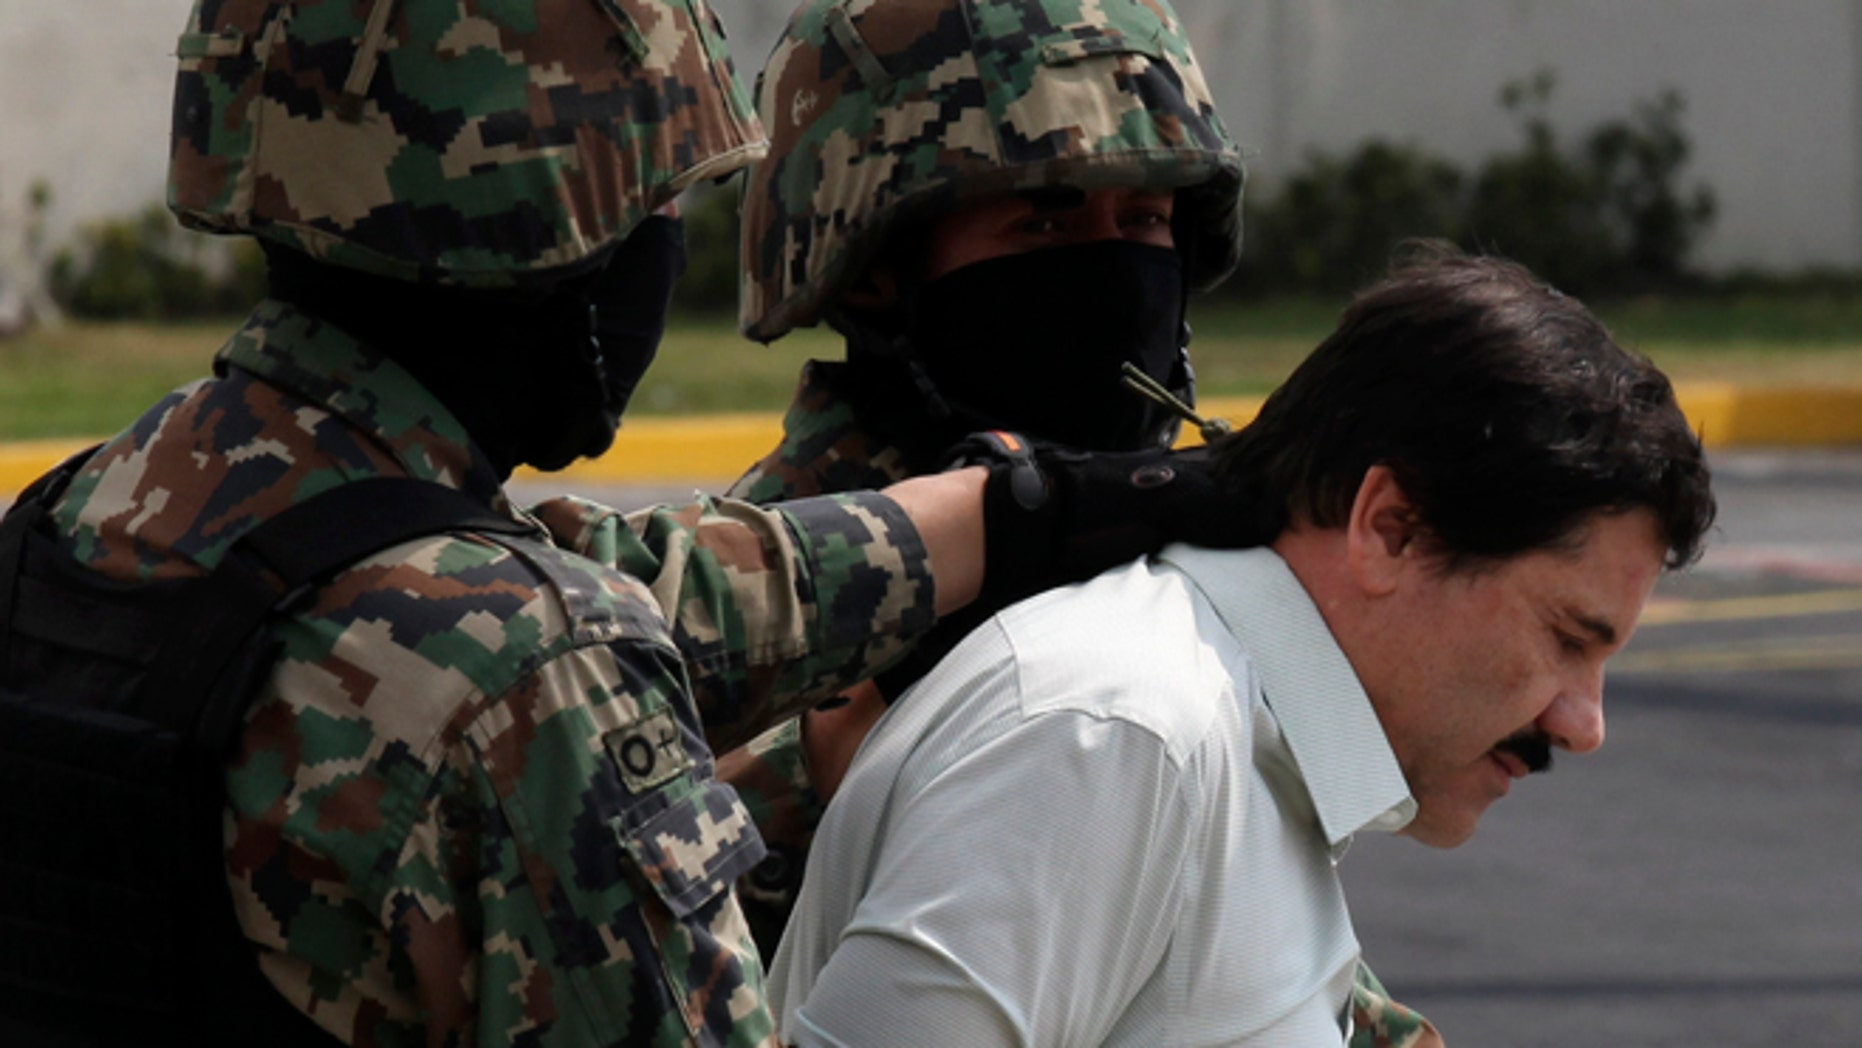 """Joaquin """"El Chapo"""" Guzman is escorted to a helicopter by Mexican navy marines in Mexico City, on Feb. 22, 2014."""